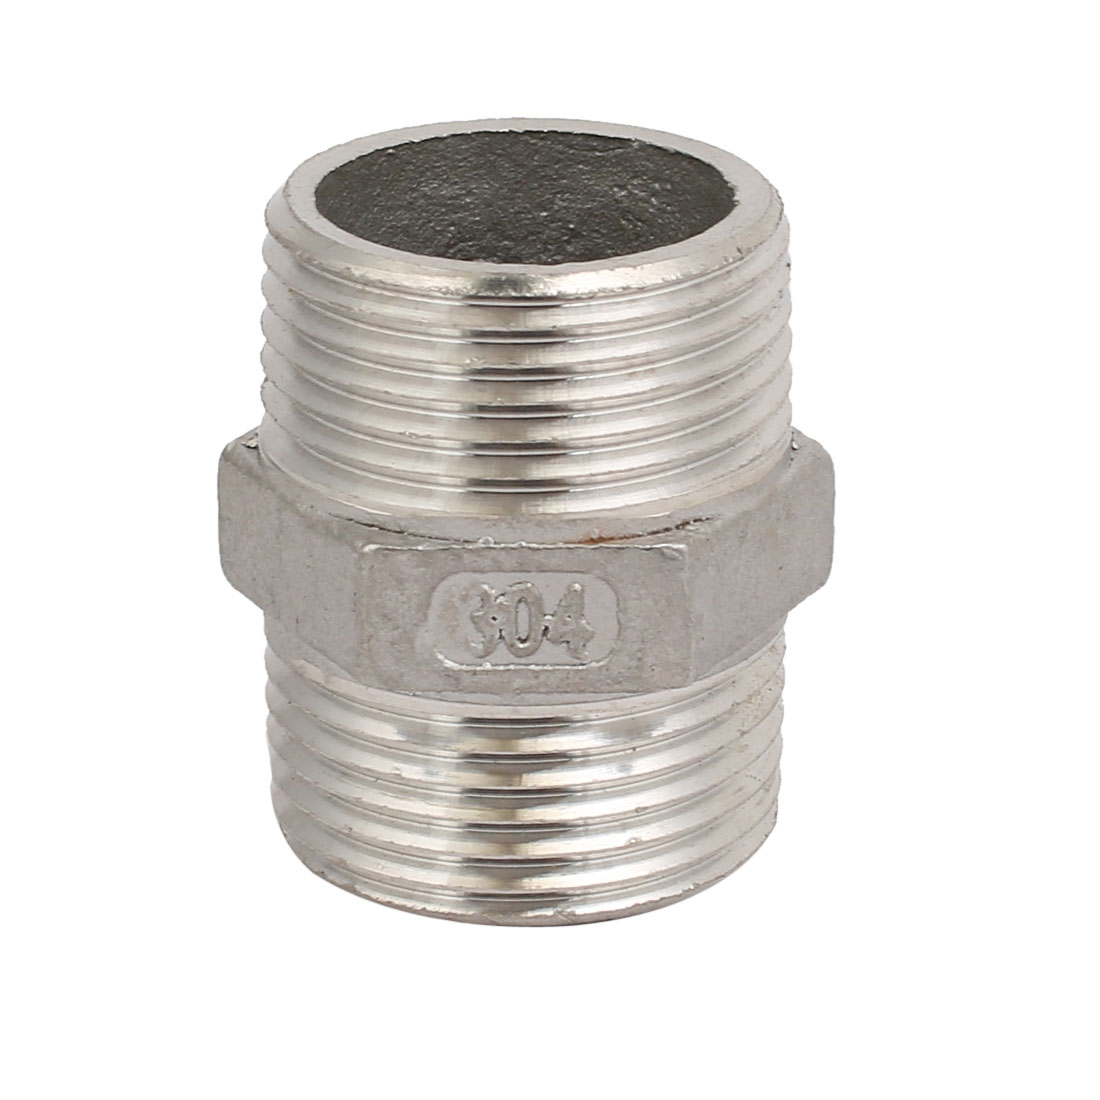 1BSP Male Thread 304 Stainless Steel Hex Nipple Quick Fitting Coupler